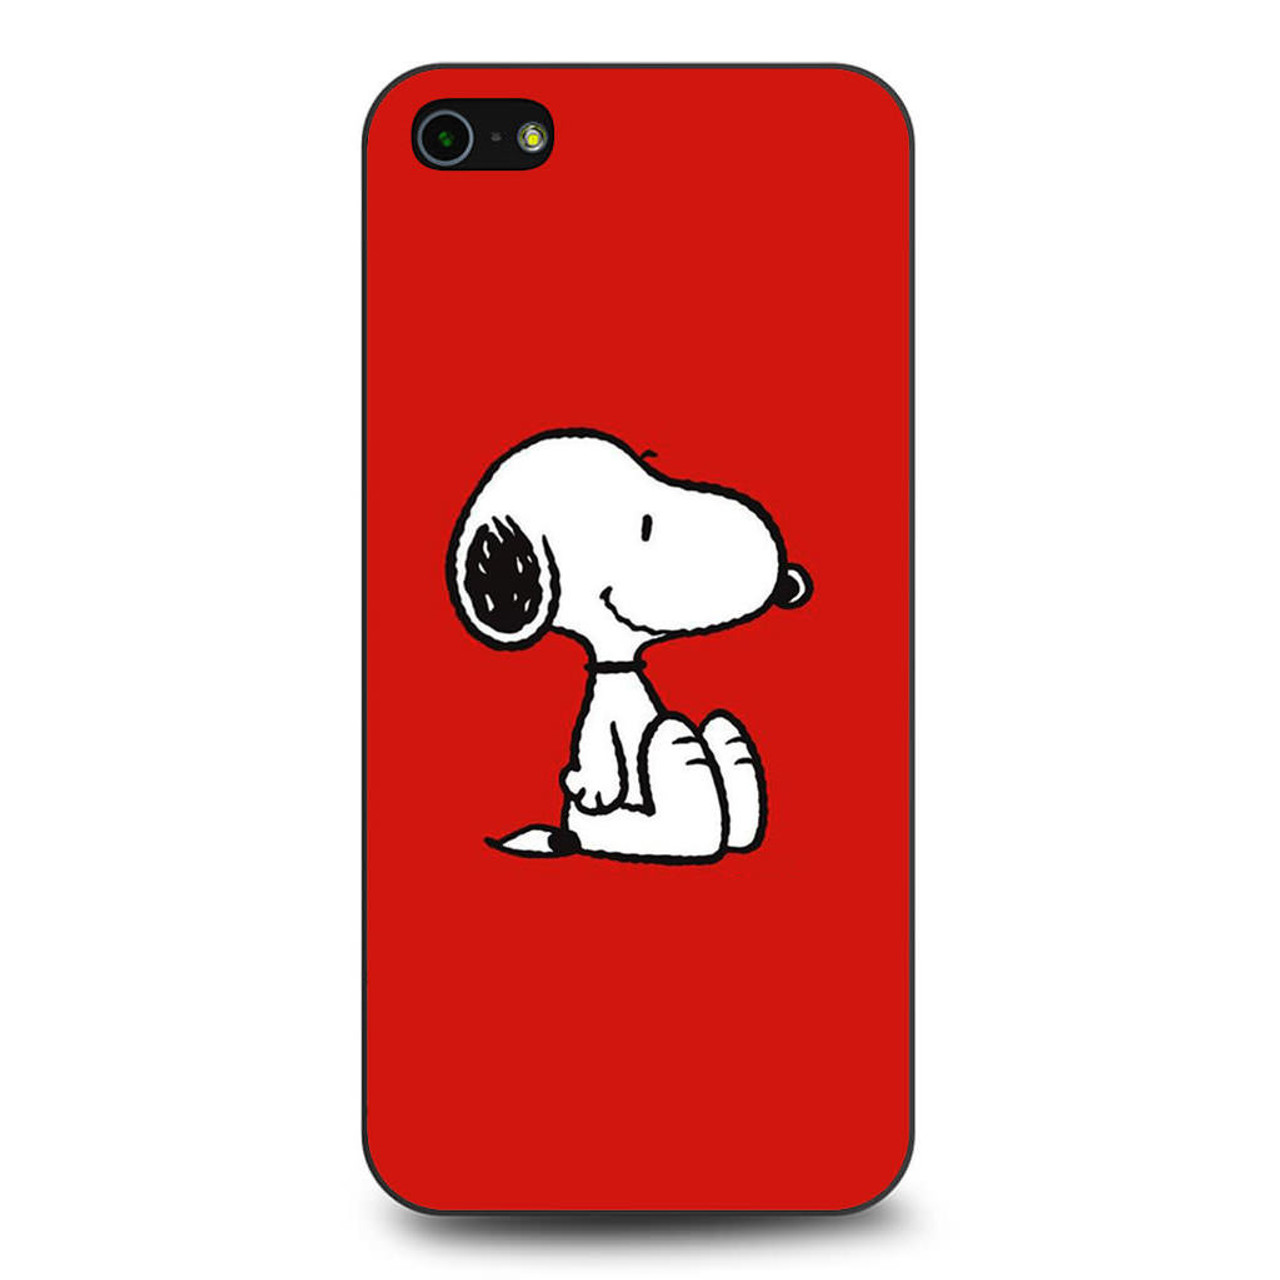 buy online ce11d 40911 Snoopy Red iPhone 5/5S/SE Case